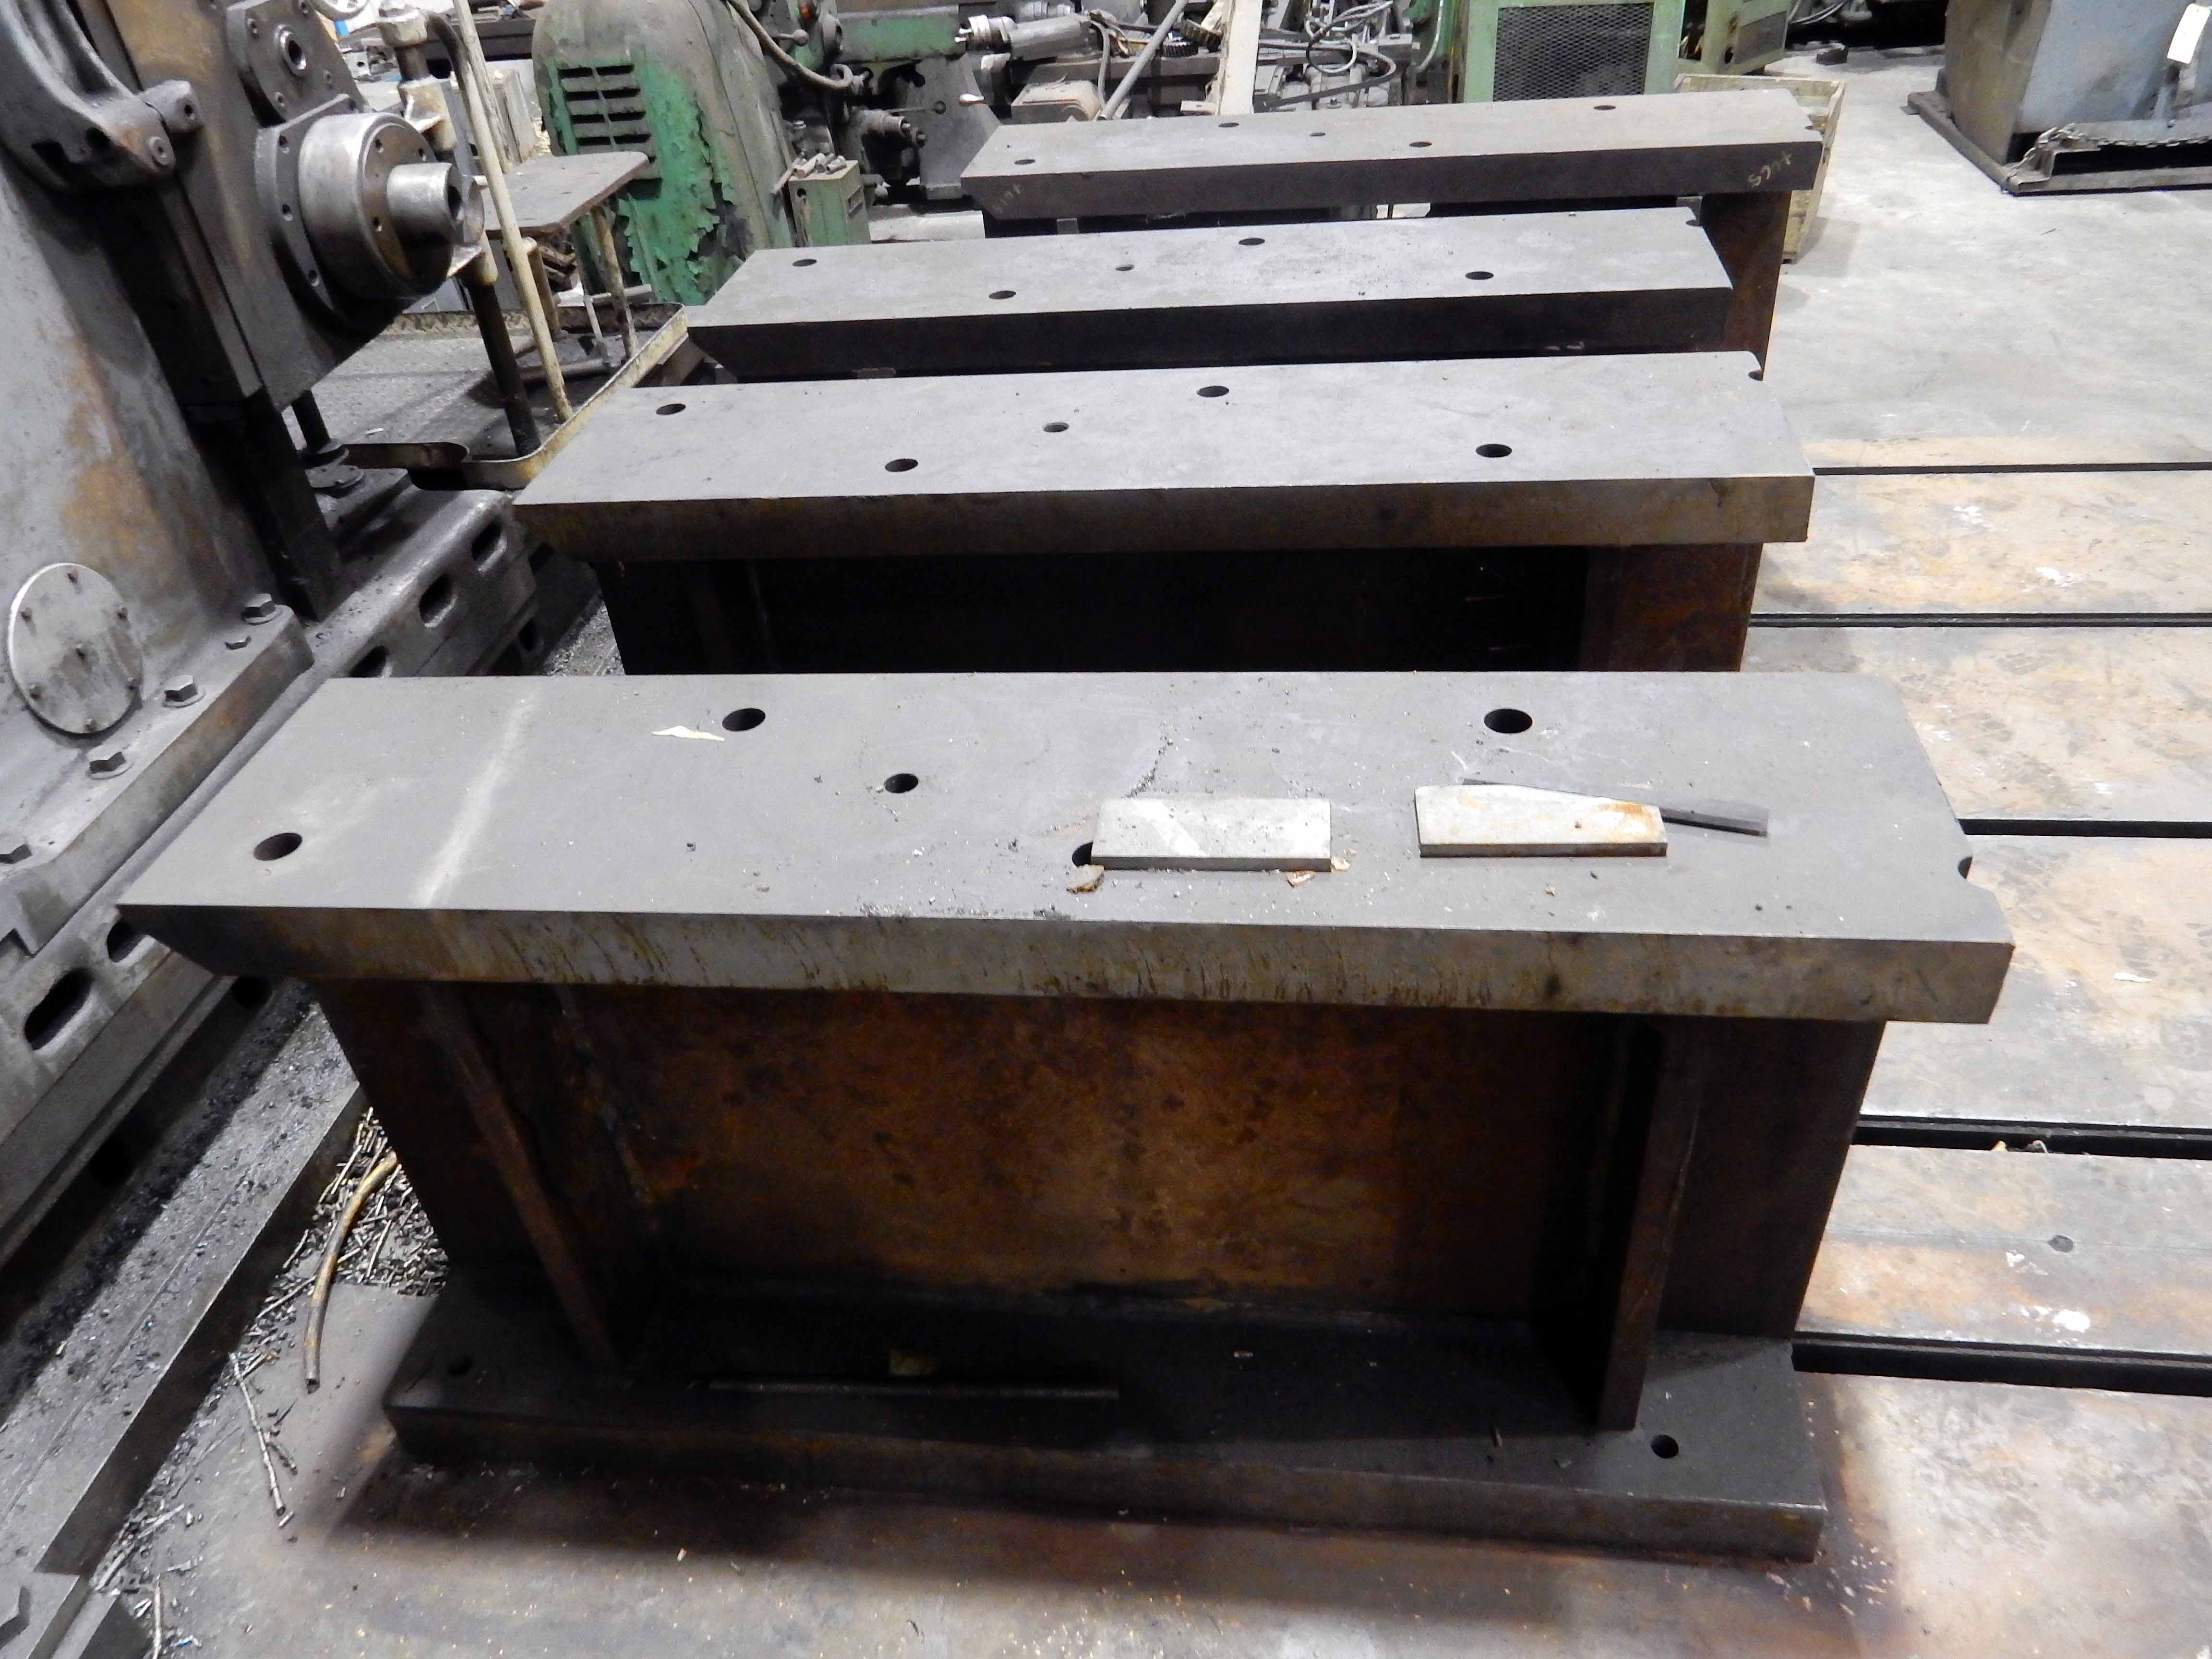 "Lot 47 - HORIZONTAL BORING MILL, GIDDINGS & LEWIS MDL. 340-F, 10' x 14' table, work risers, 13"" x 56"" x 30"""